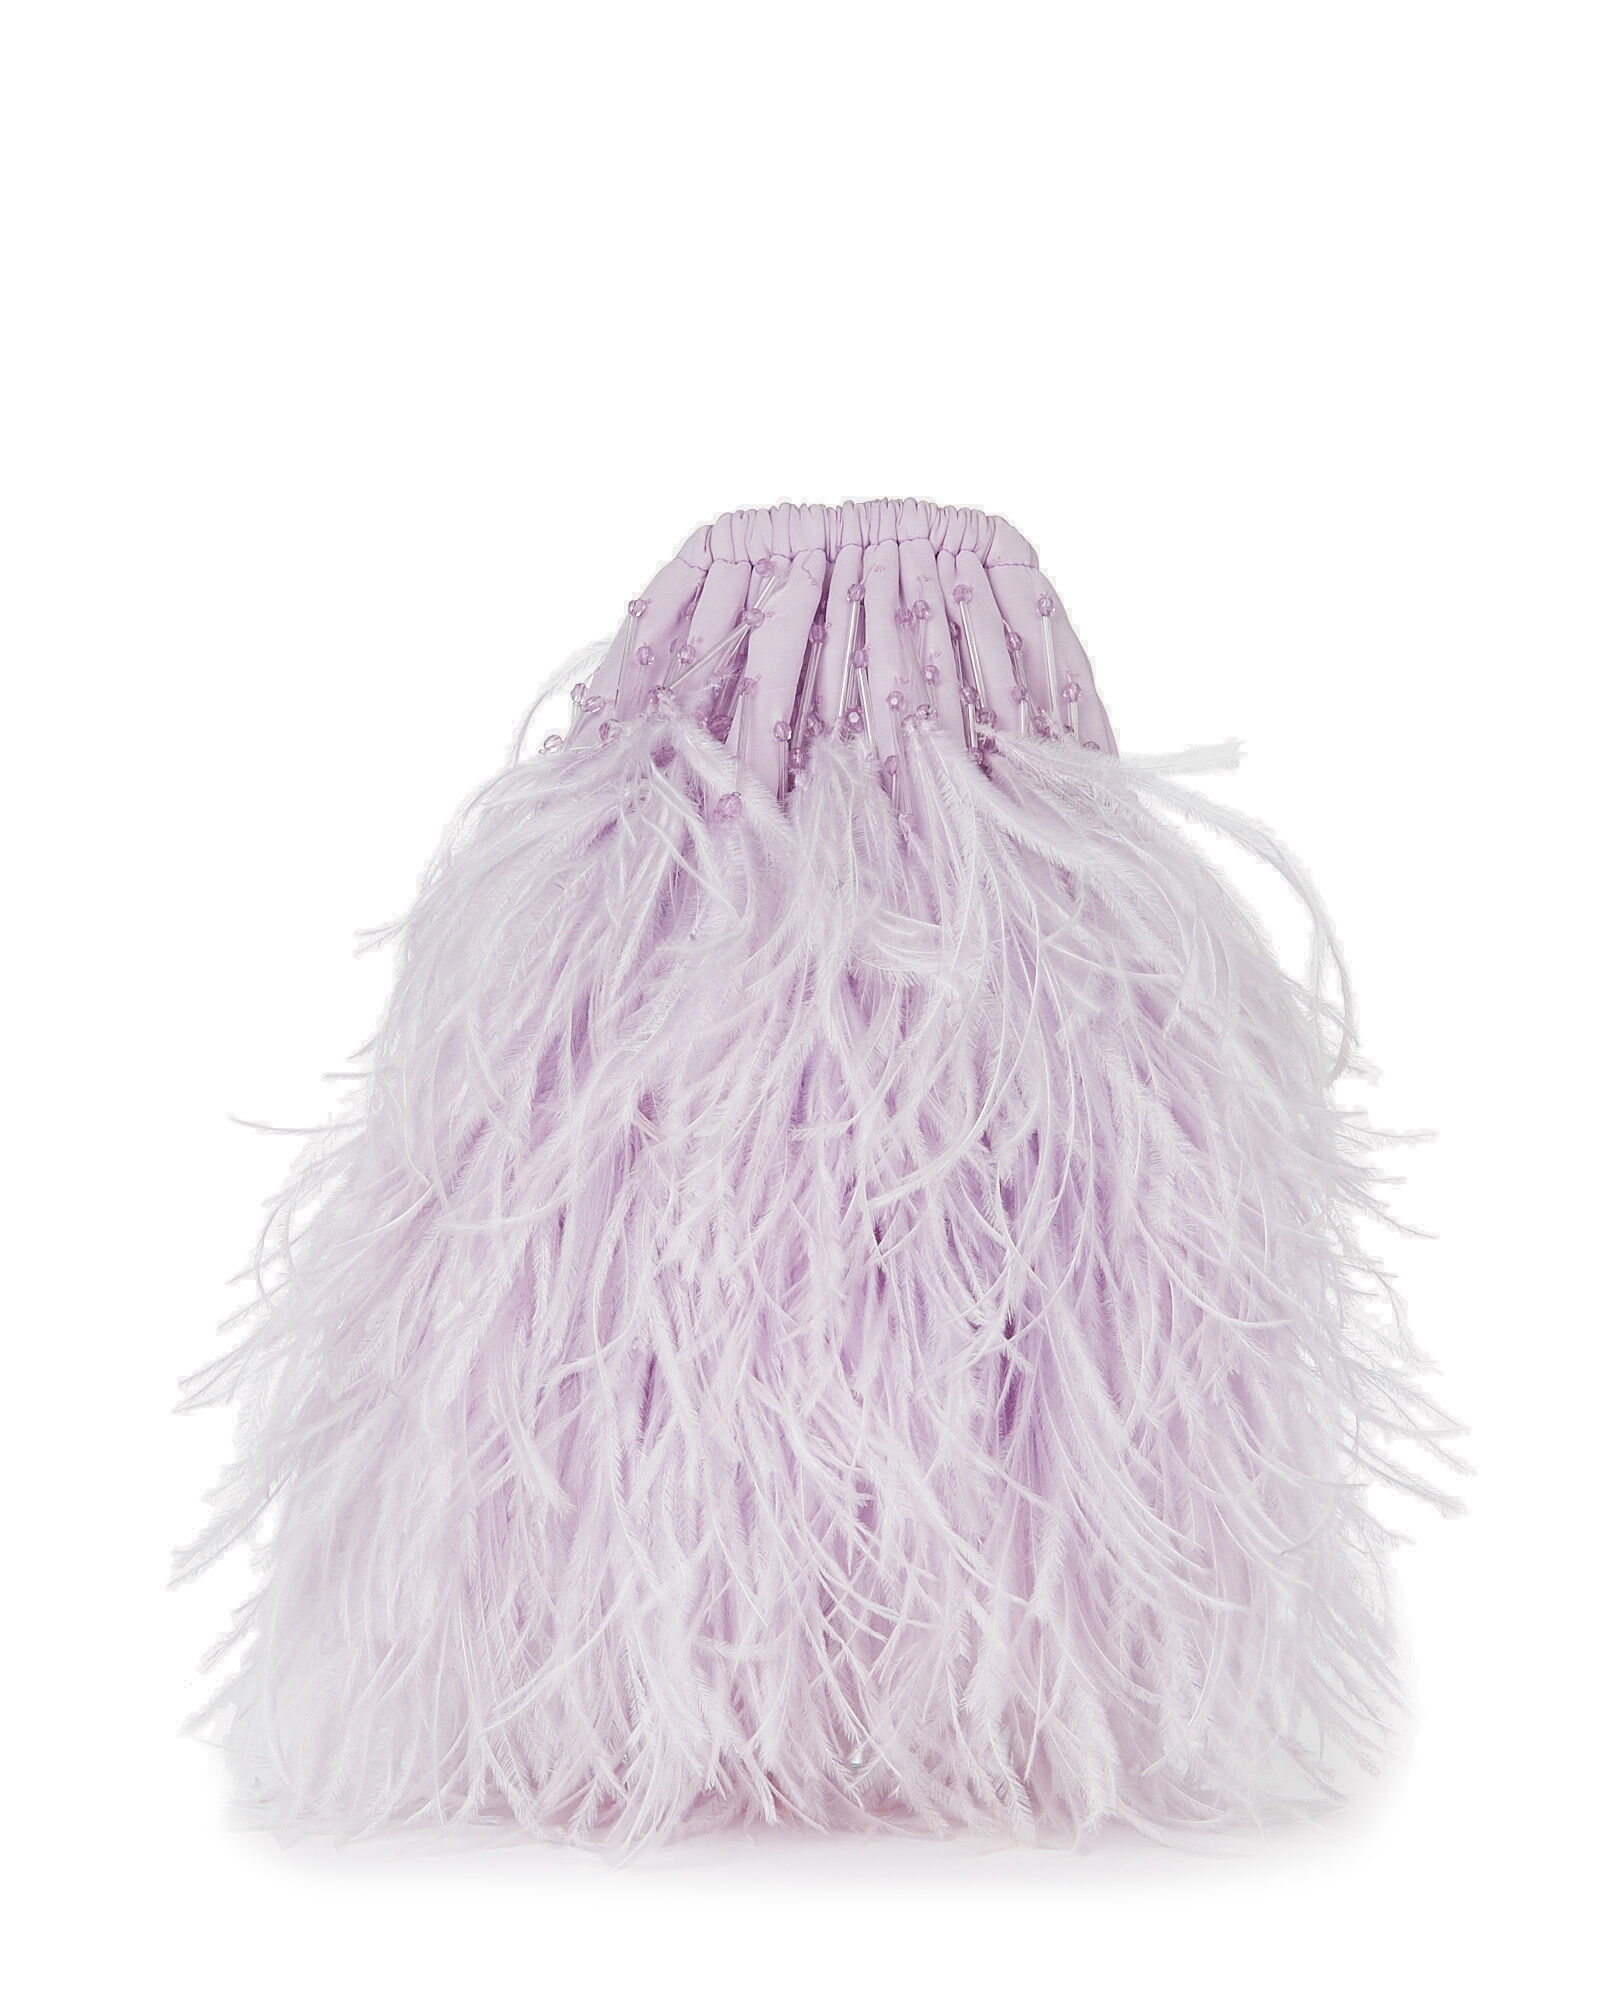 Feather-Trimmed Drawstring Pouch, LILAC, hi-res